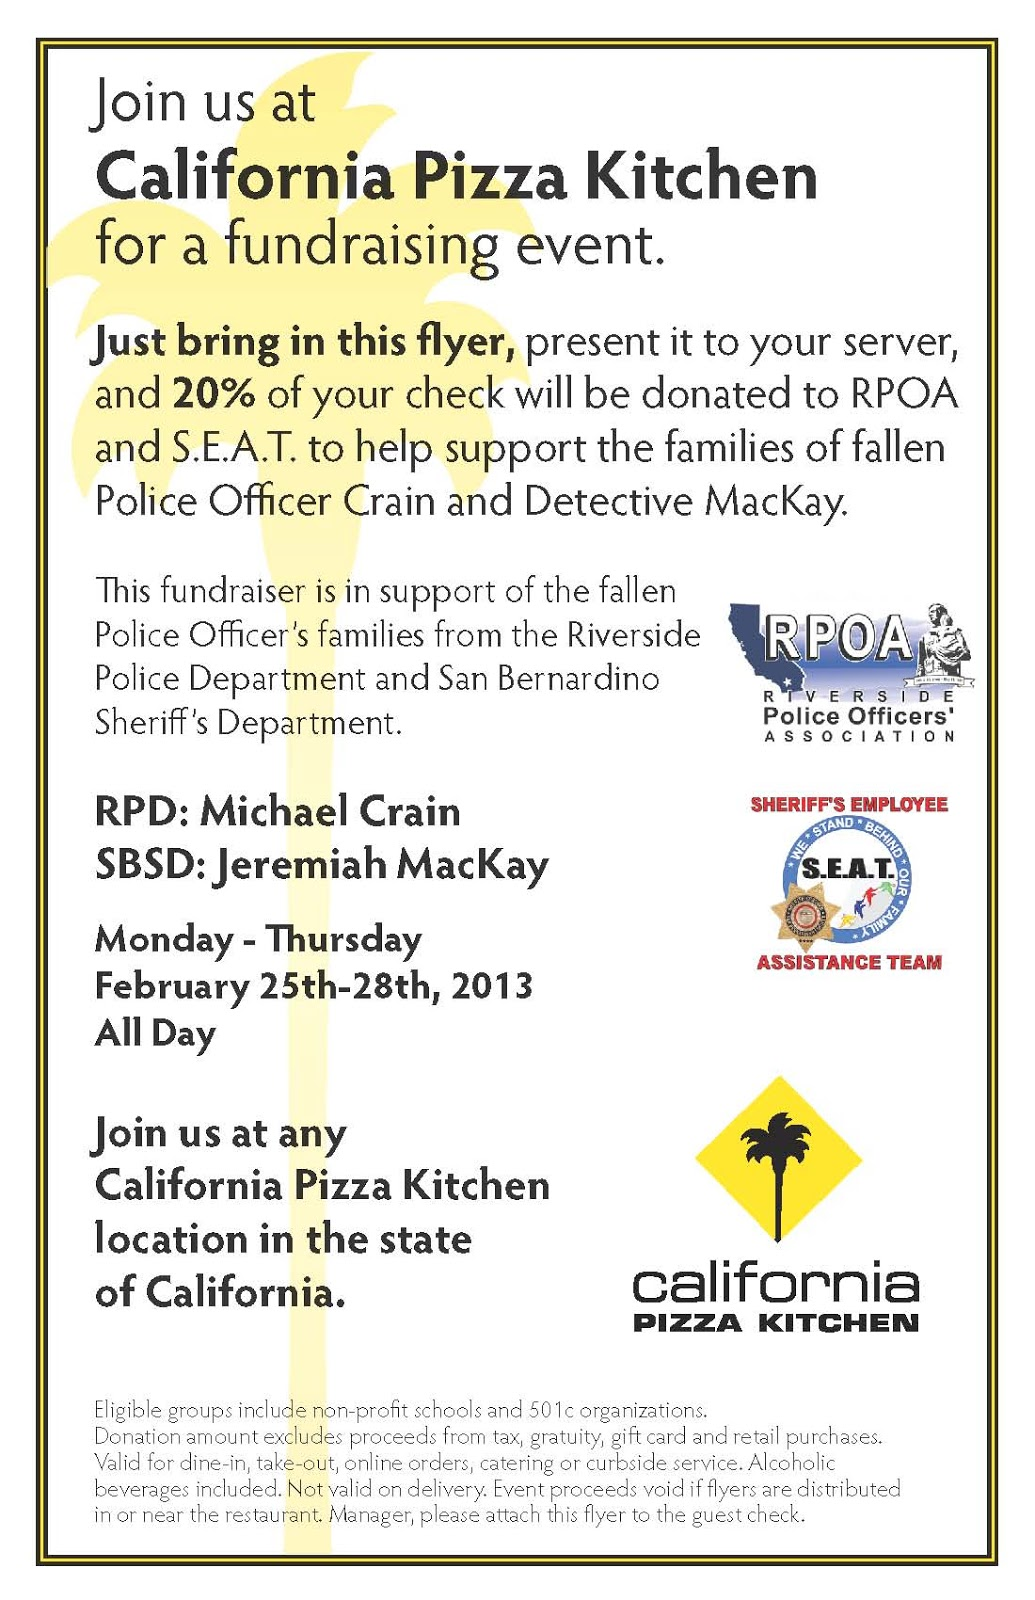 Arcadia Public Library: CPK Fundraiser for Fallen Officers